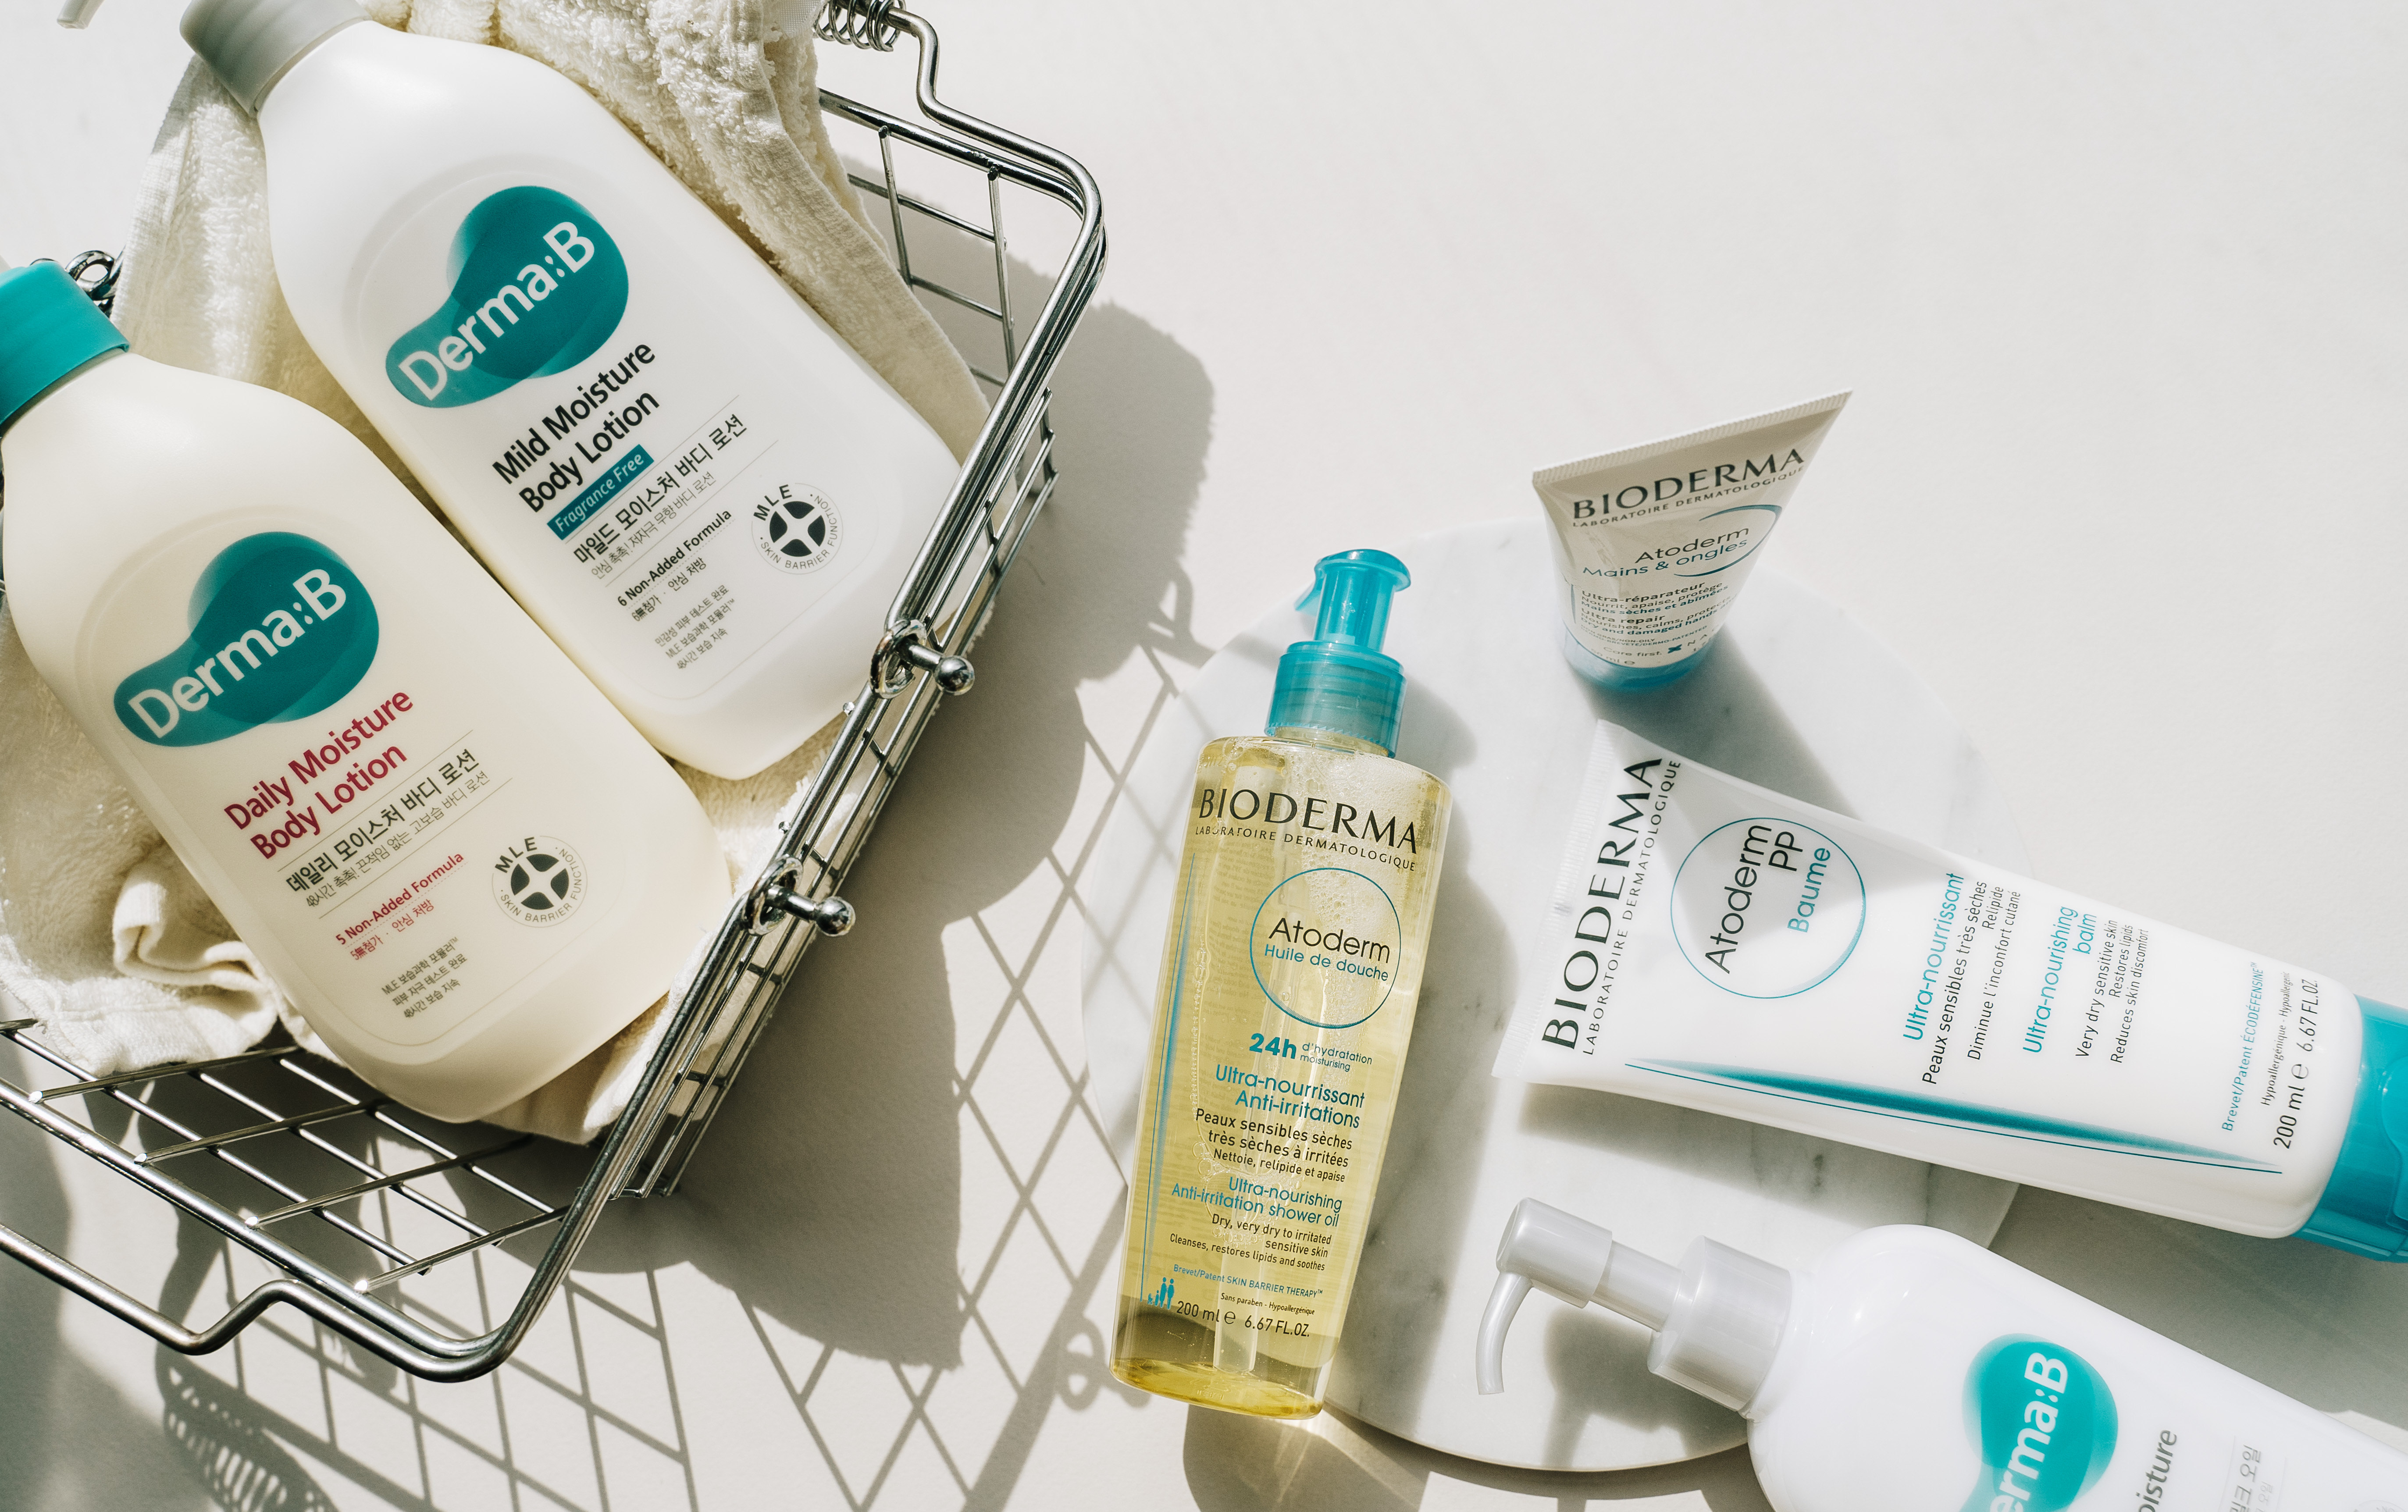 The Best Products For Eczema: An Affordable, Top-To-Toe Guide